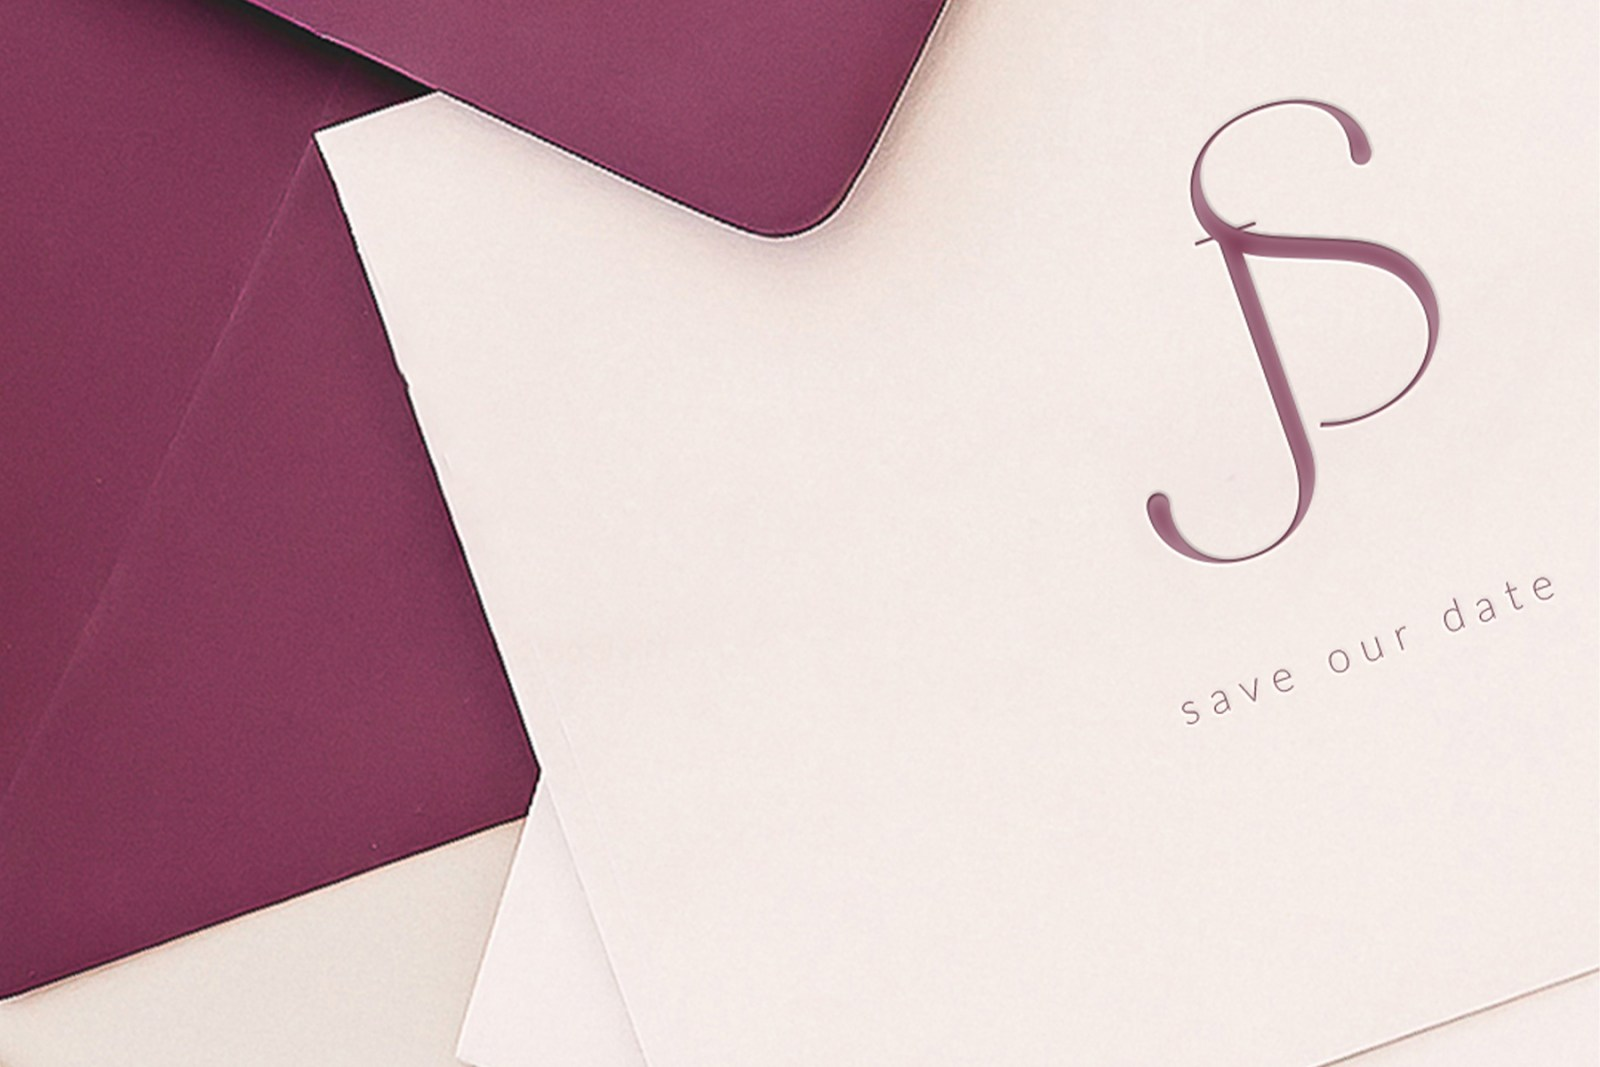 modern wedding monogram with bride and groom initials J and S in a modern clean styled sans serif type on blush card letterpress in the foreground backed by a fuchsia colored envelope in the background